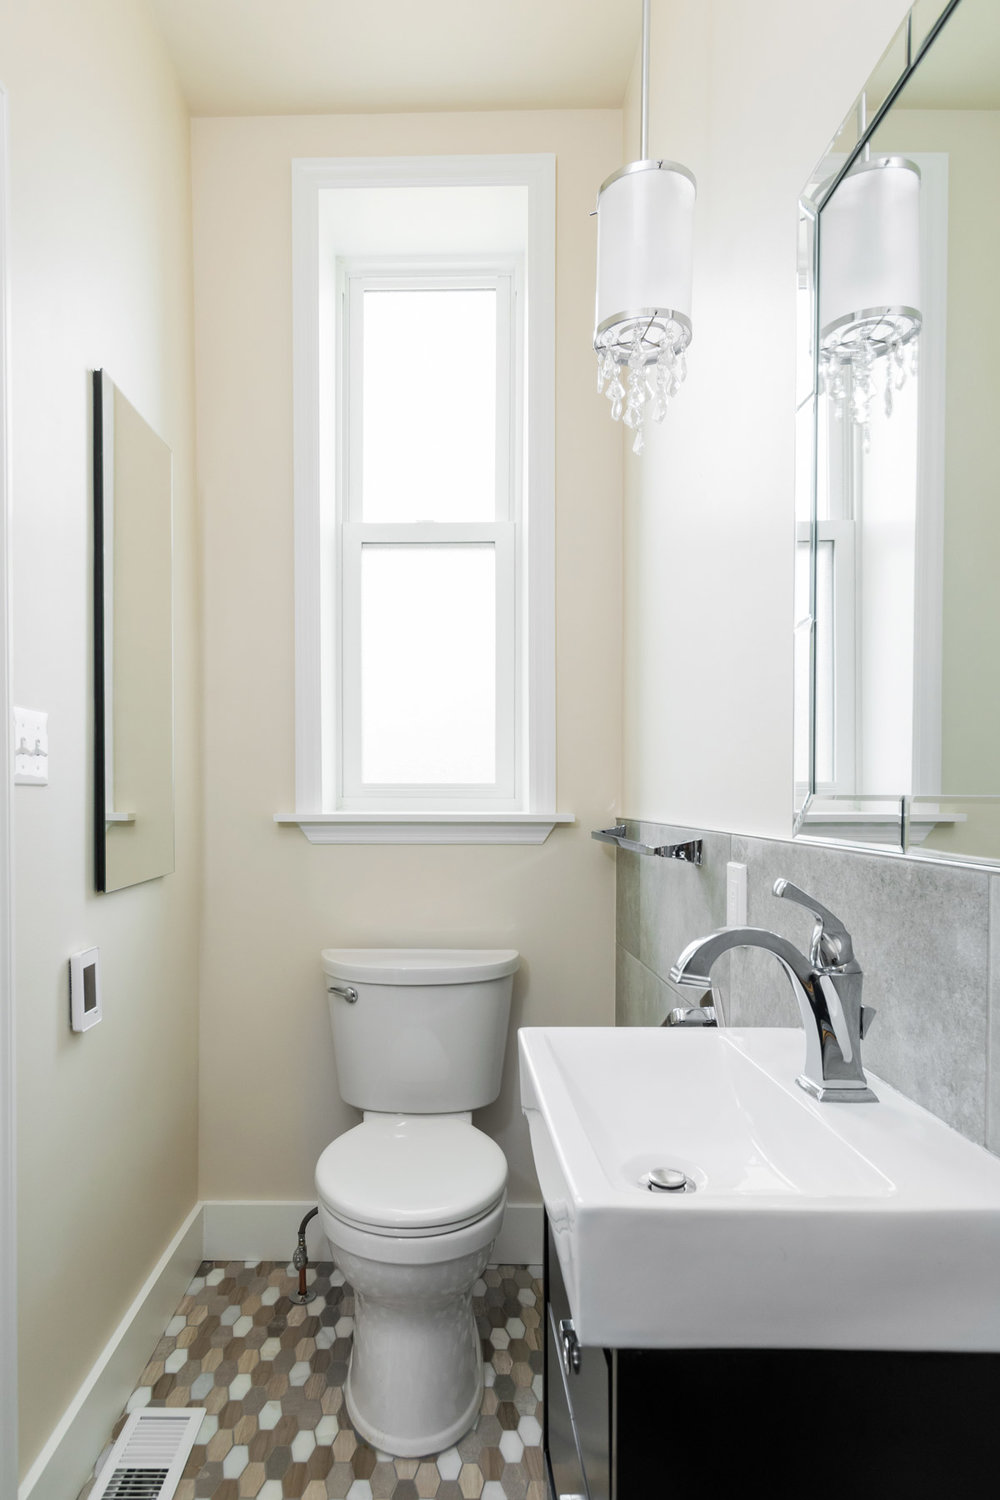 Economical Window with Sink